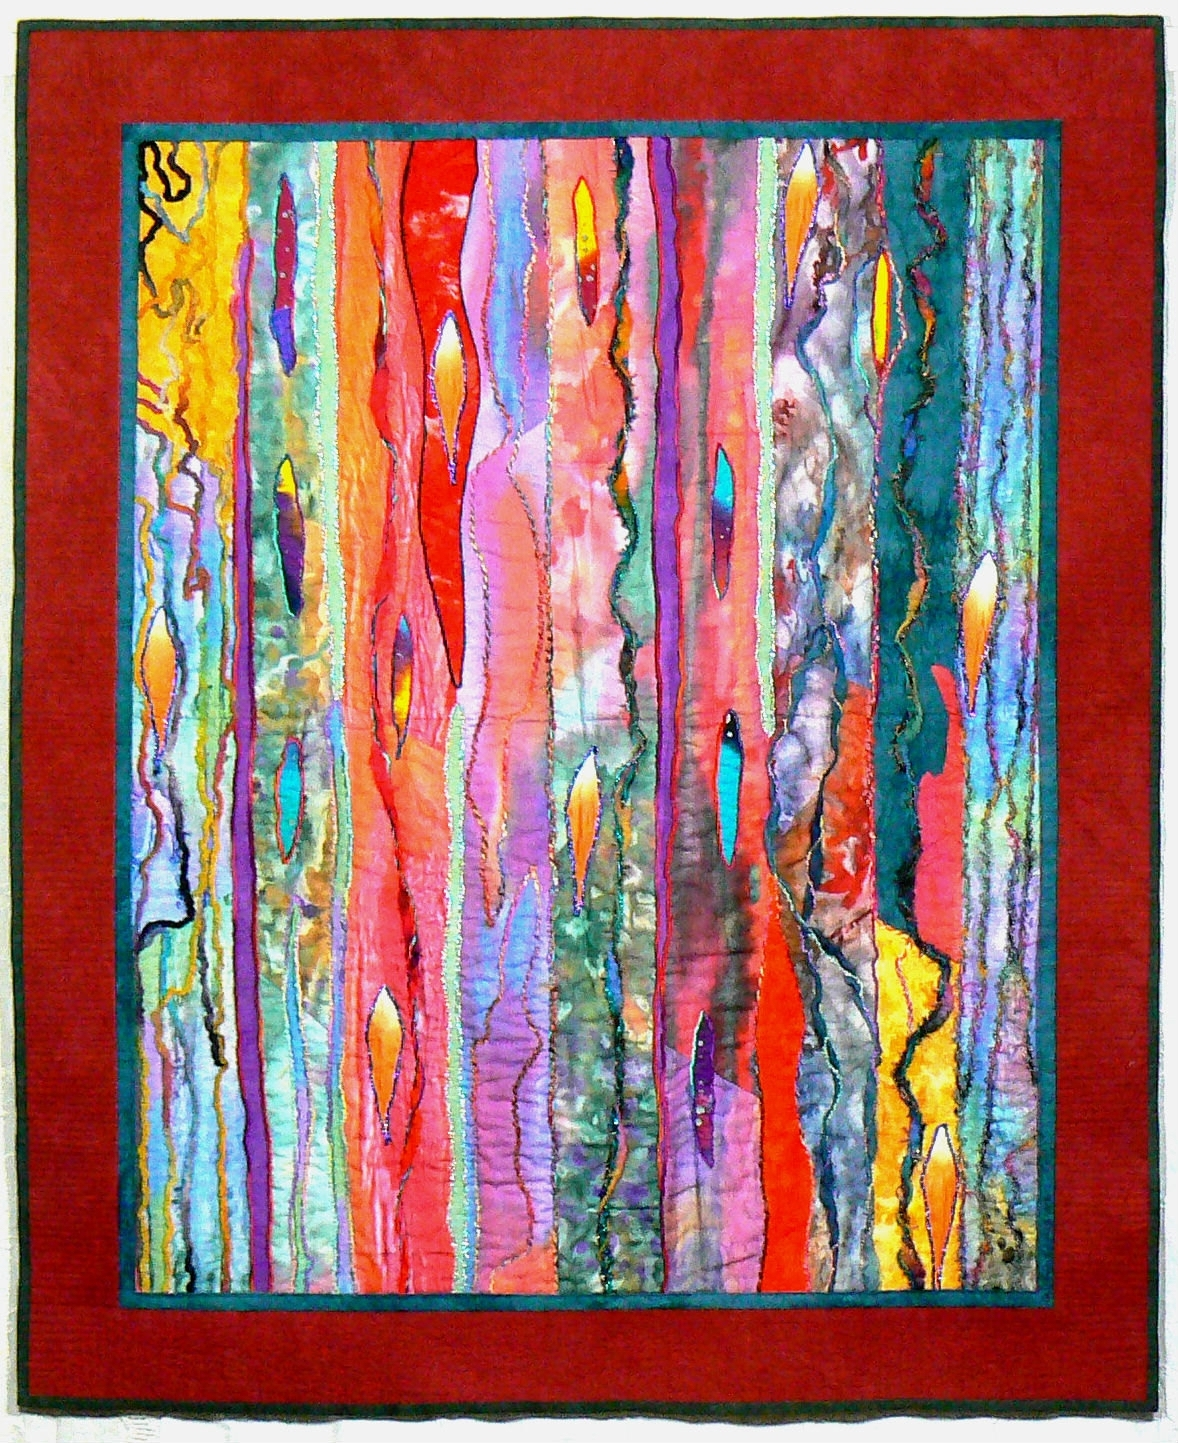 Fiber Art Quilt, Art Wall Hanging, Contemporary Quilt, Modern Art Regarding Most Current Modern Textile Wall Art (View 3 of 15)